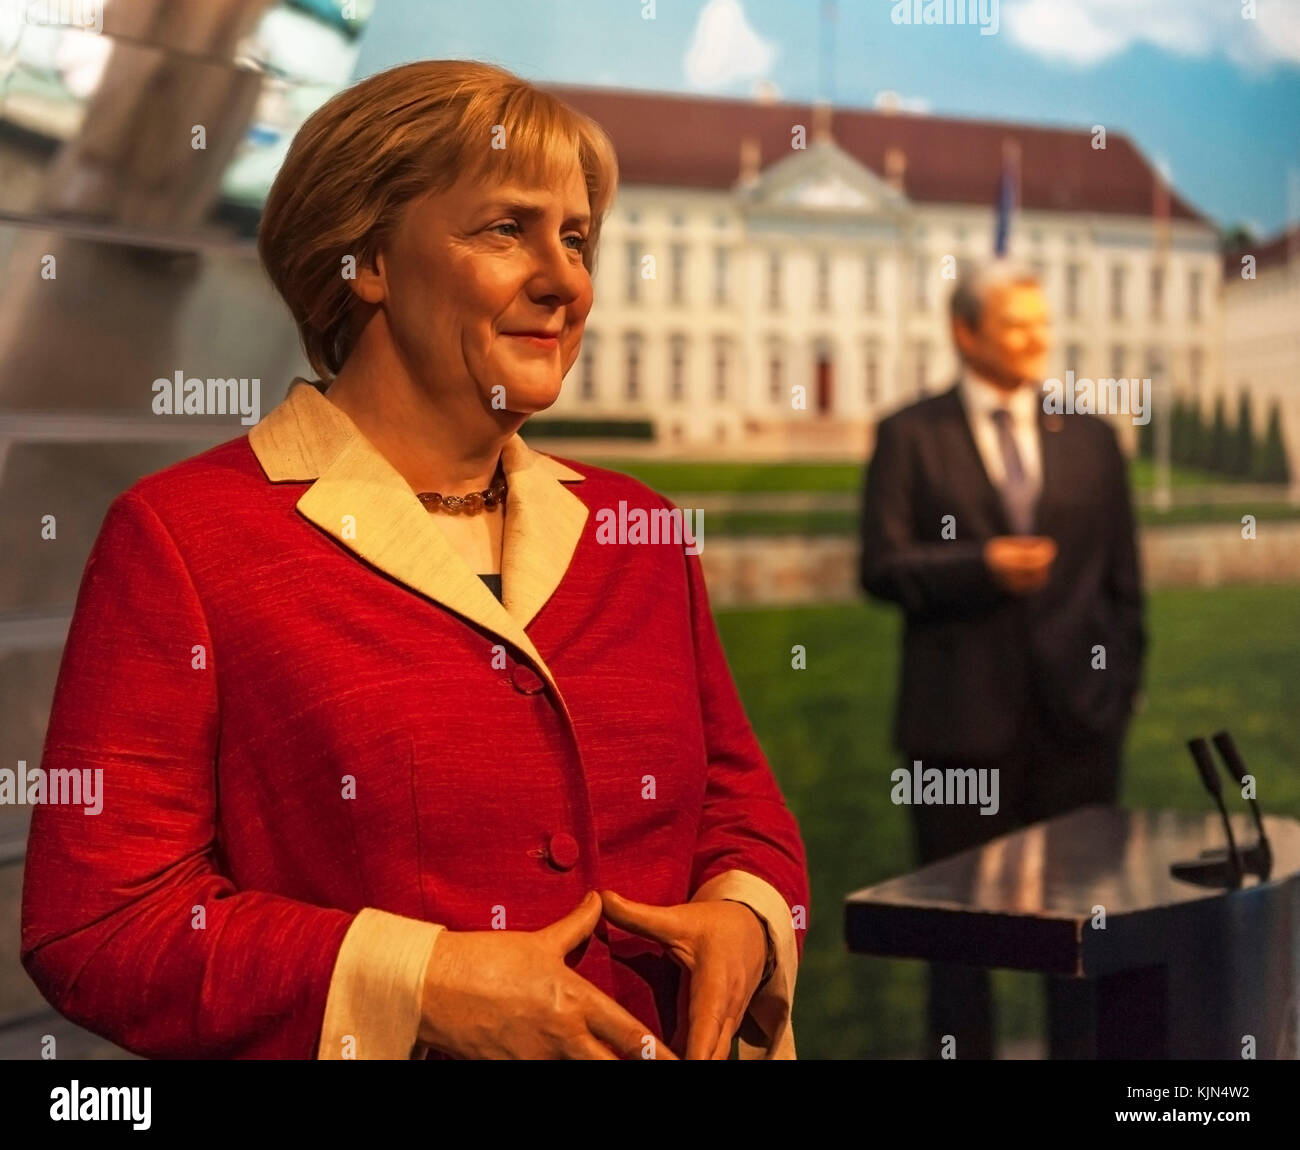 madame tussauds in wax stock photos madame tussauds in wax stock images alamy. Black Bedroom Furniture Sets. Home Design Ideas